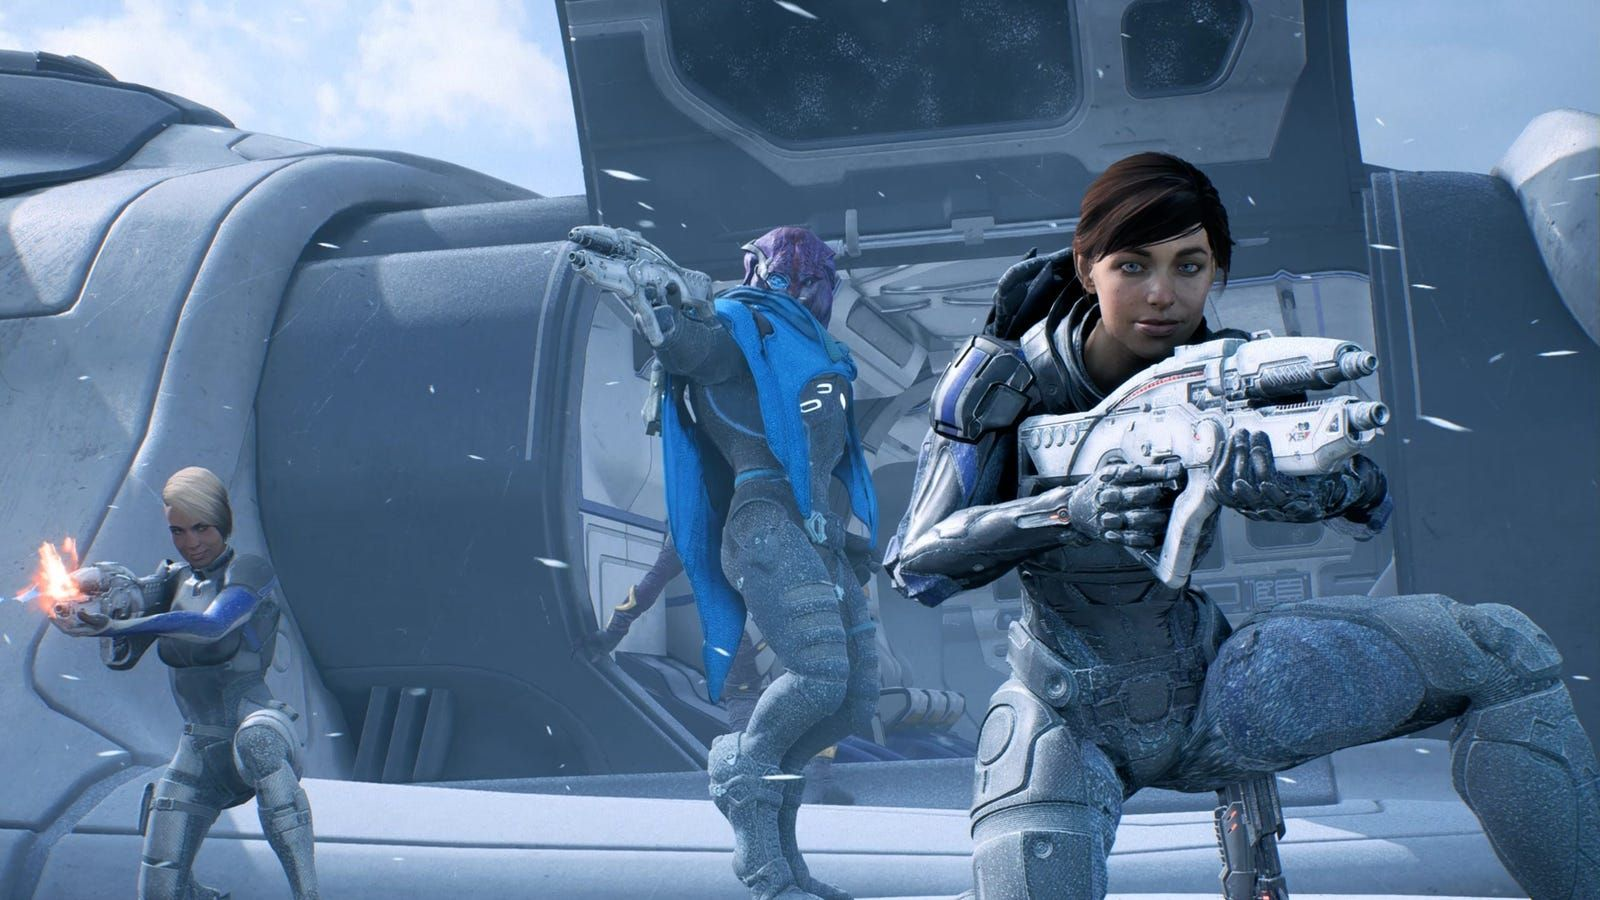 Sources: BioWare Montreal Scaled Down, Mass Effect Put On Ice For Now - Kotaku